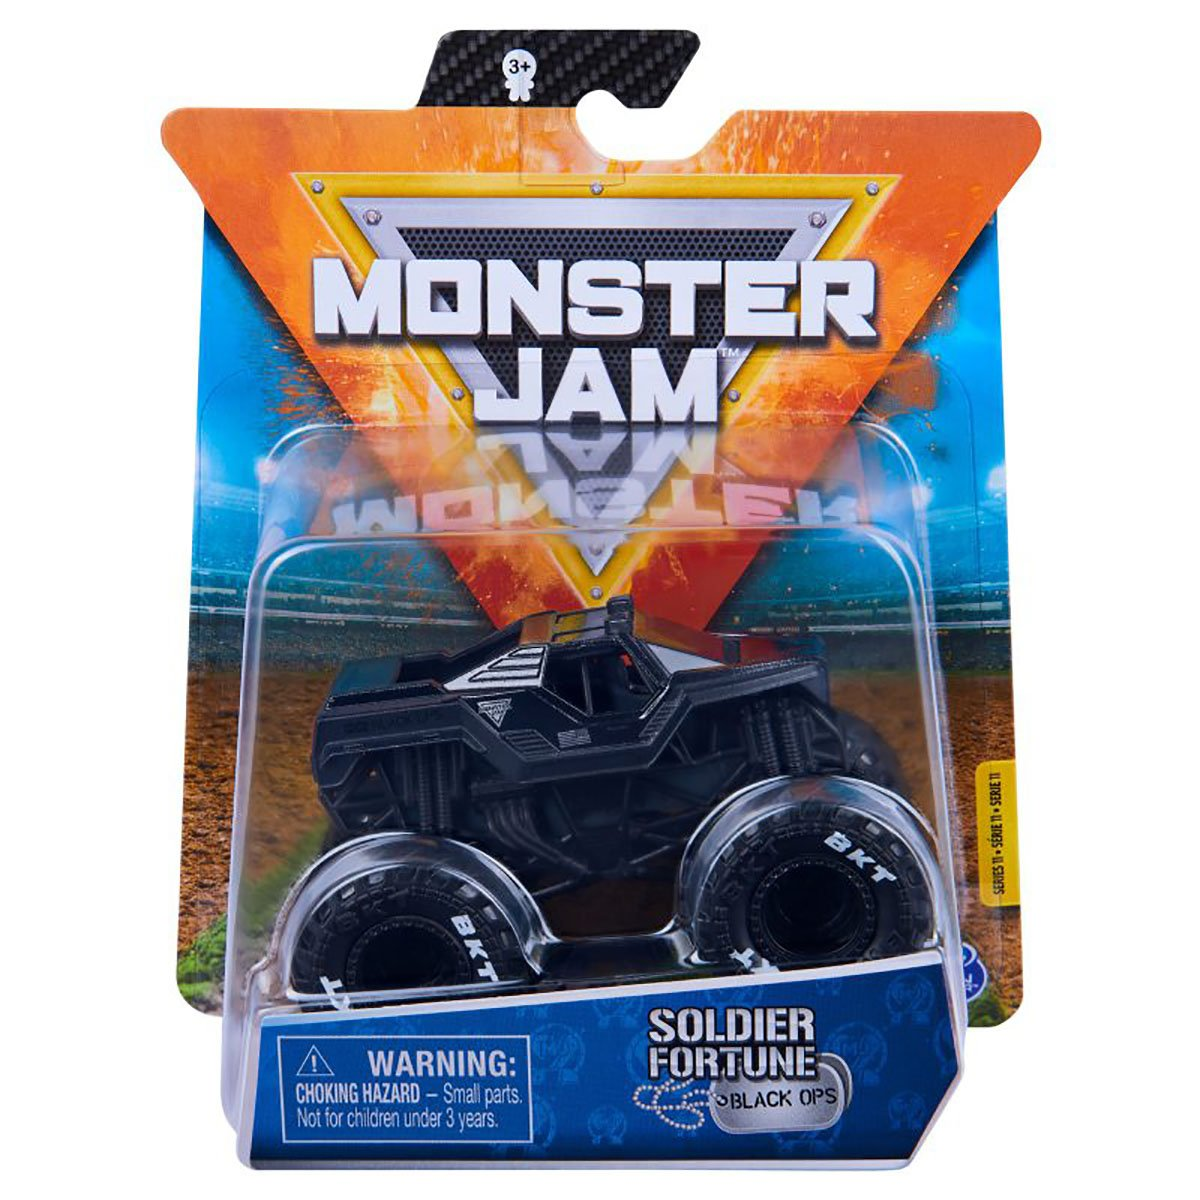 Masinuta Monster Jam, Scara 1:64, Soldier Fortune Black Ops, Negru